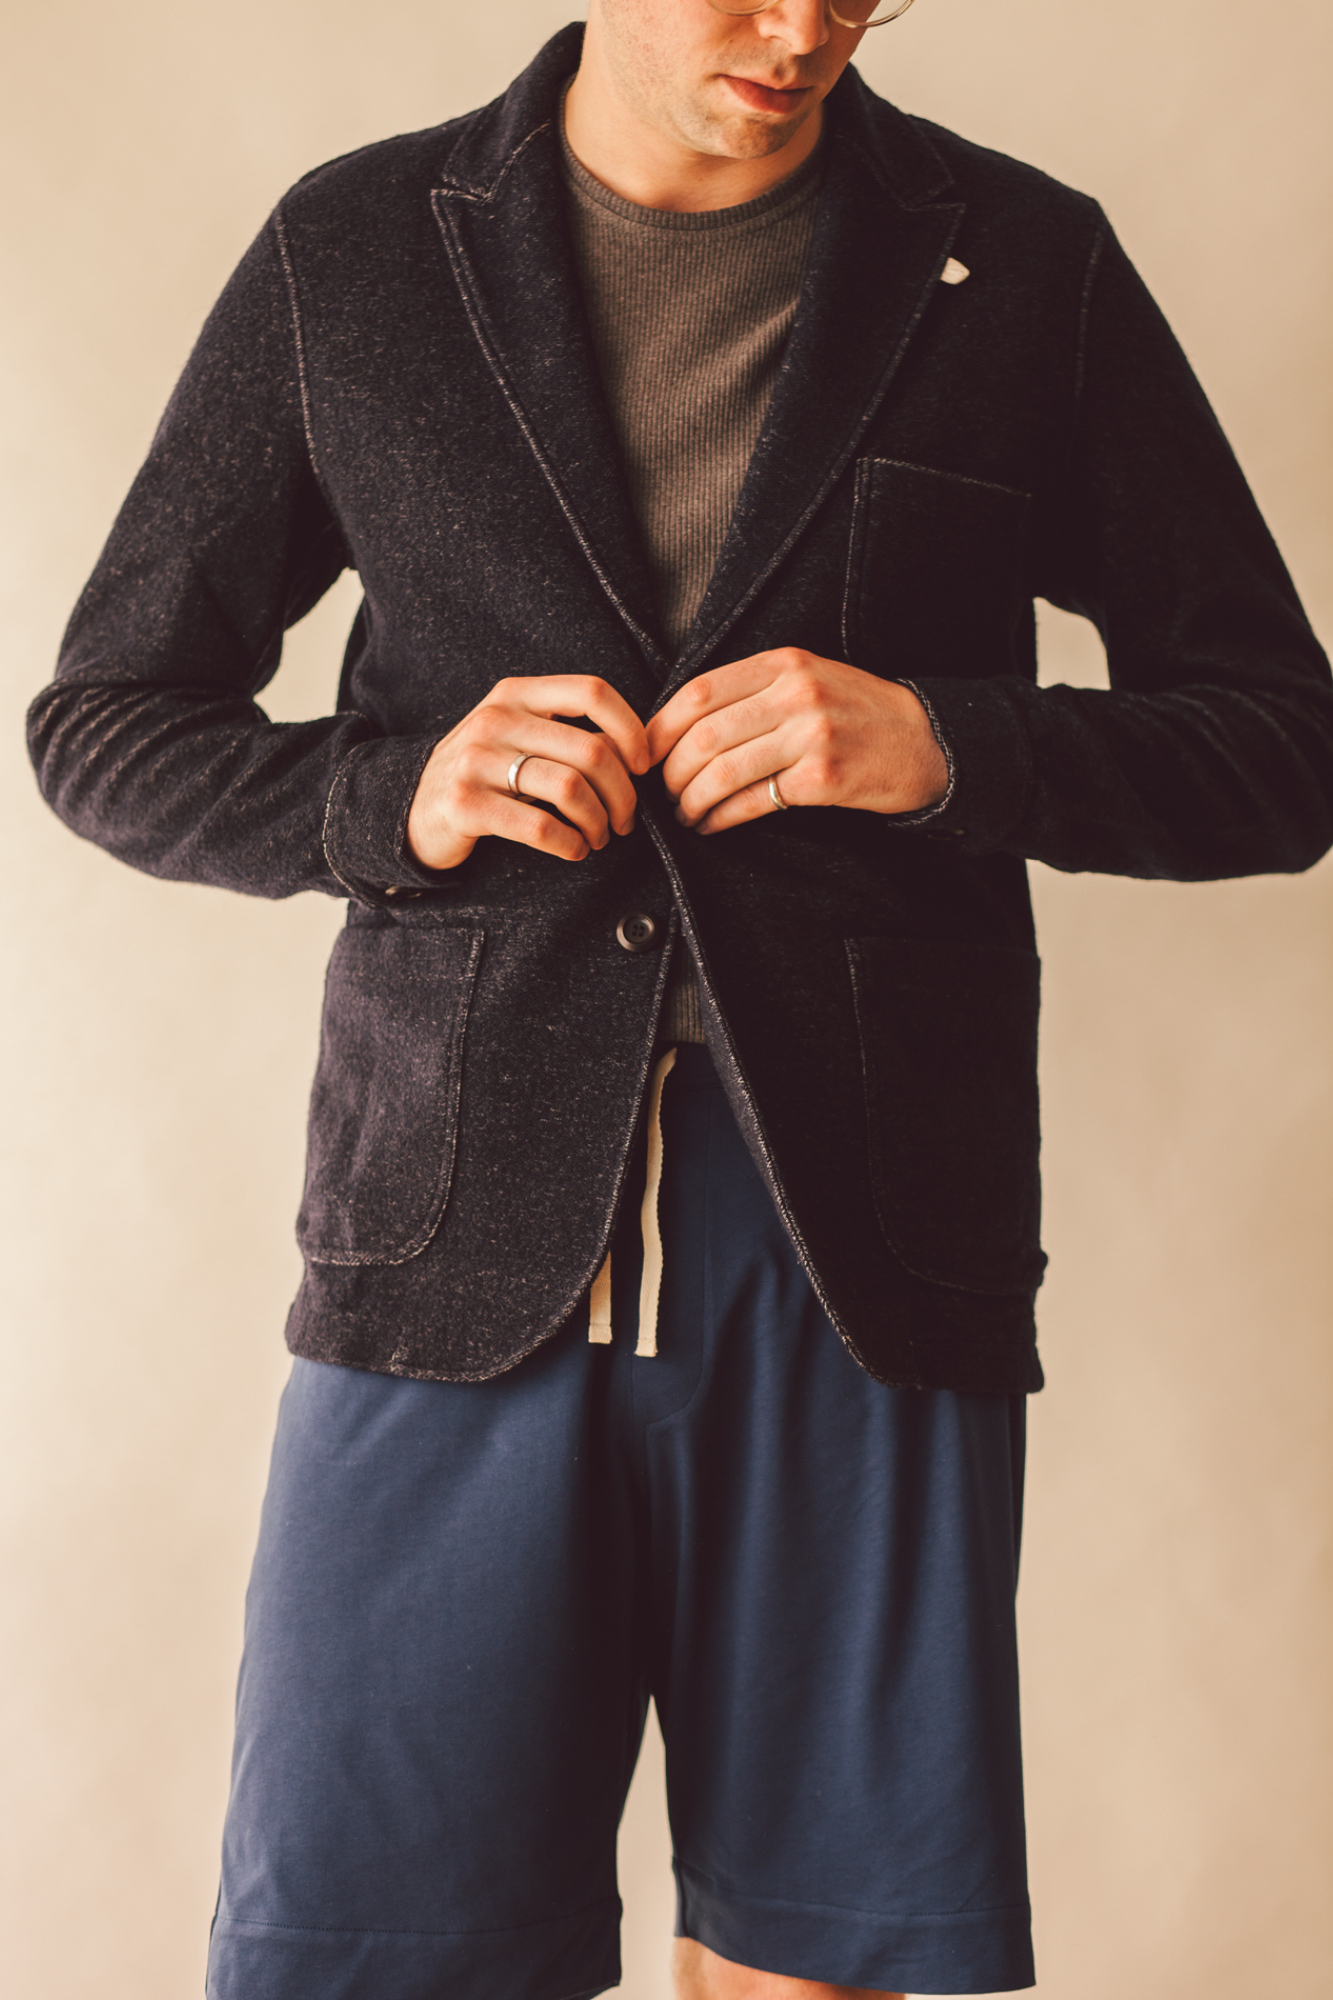 Oliver Spencer Lounge Jacket Birch in navy, £249